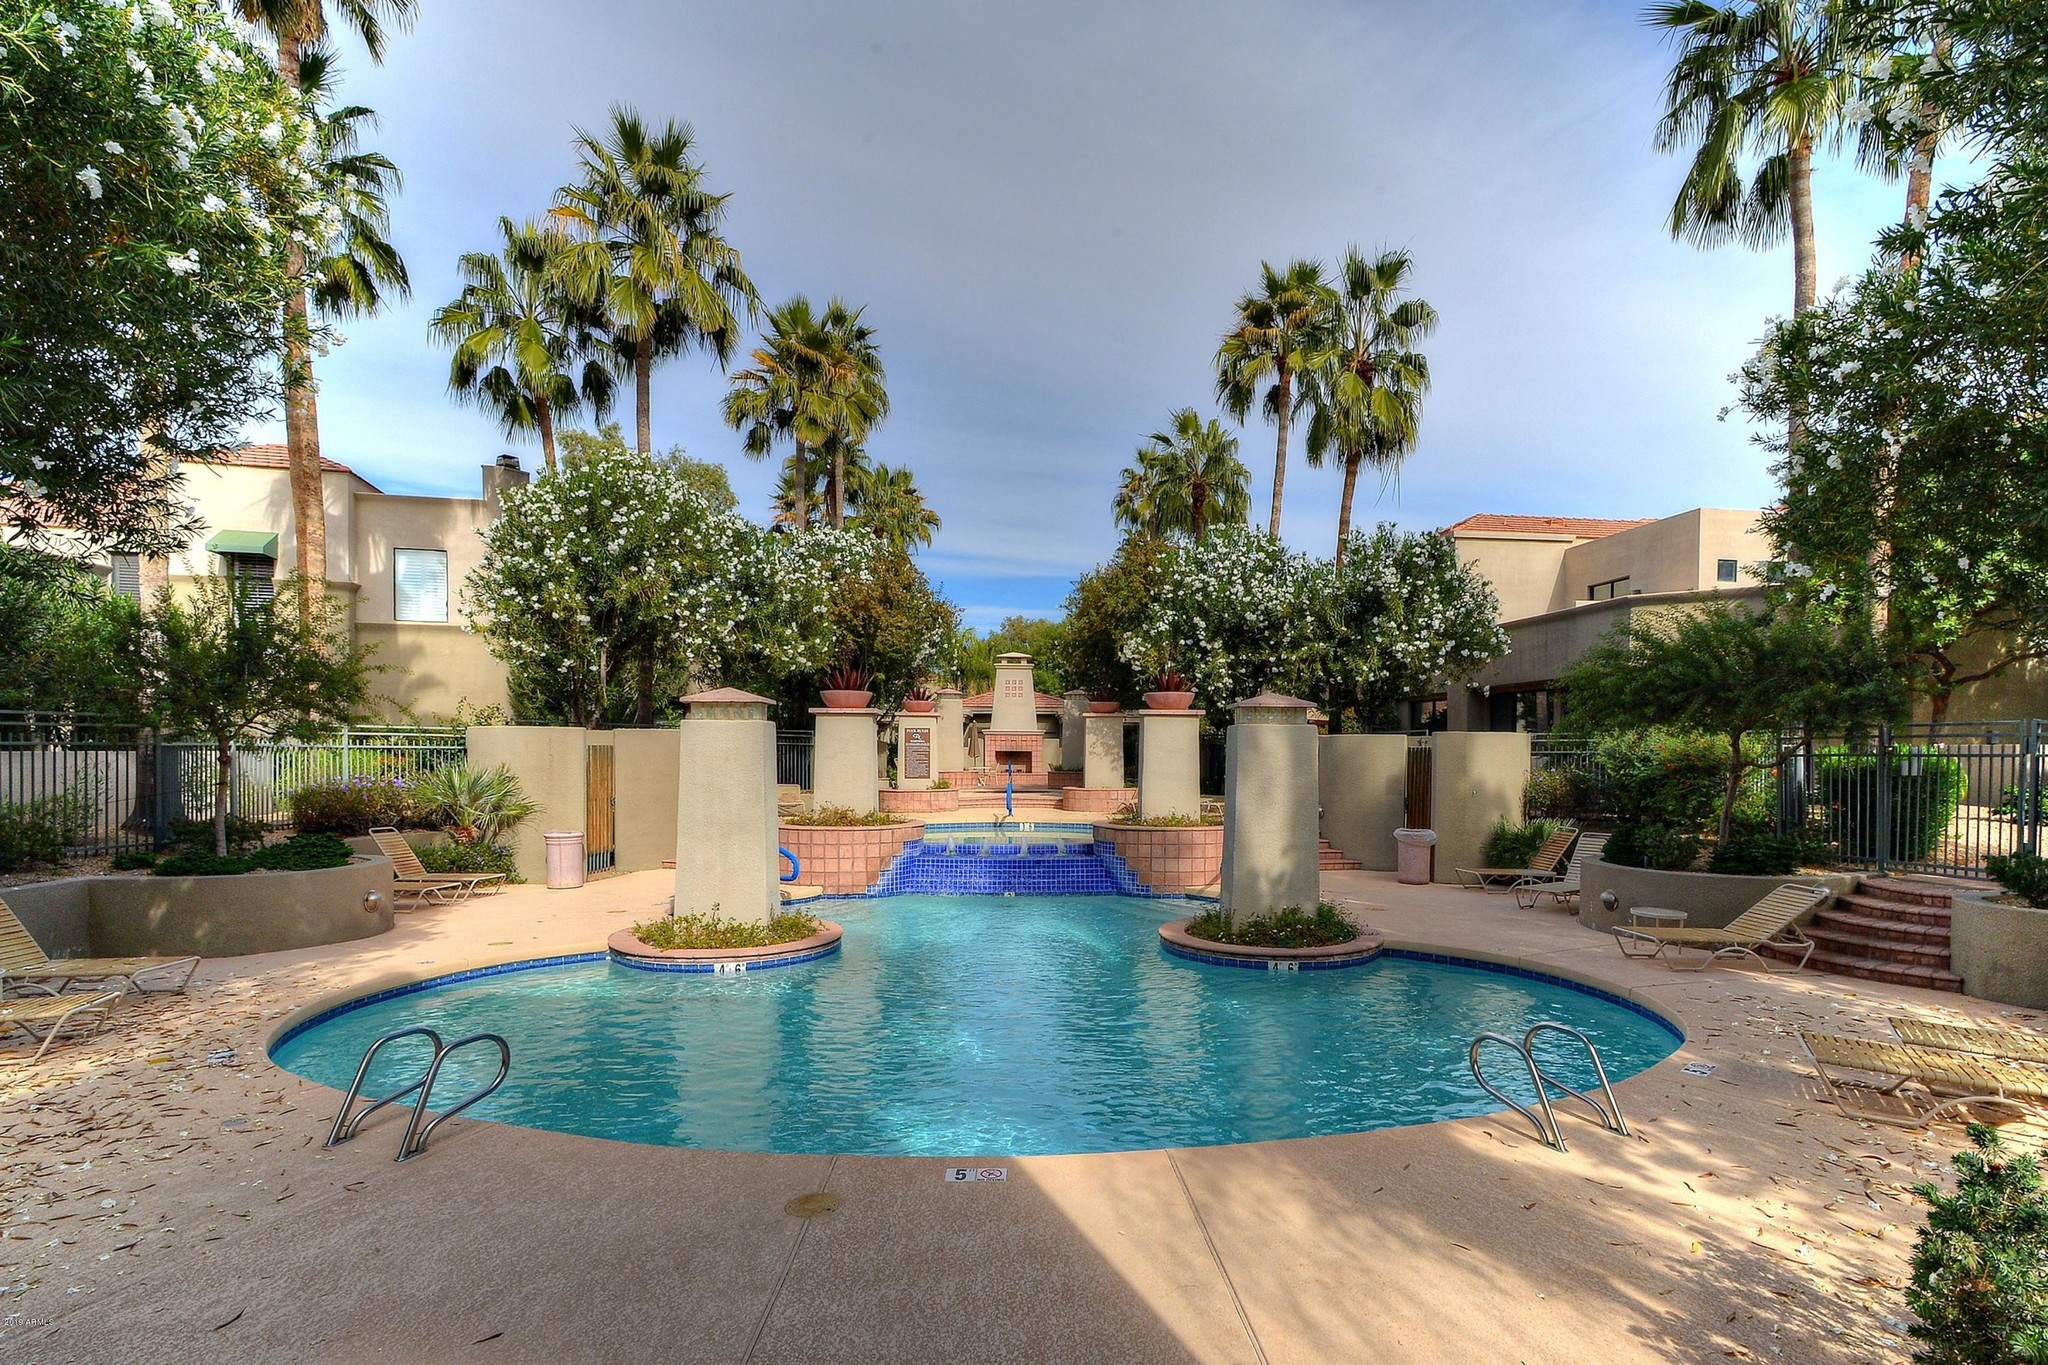 2113 SqFt Townhouse In Gainey Ranch